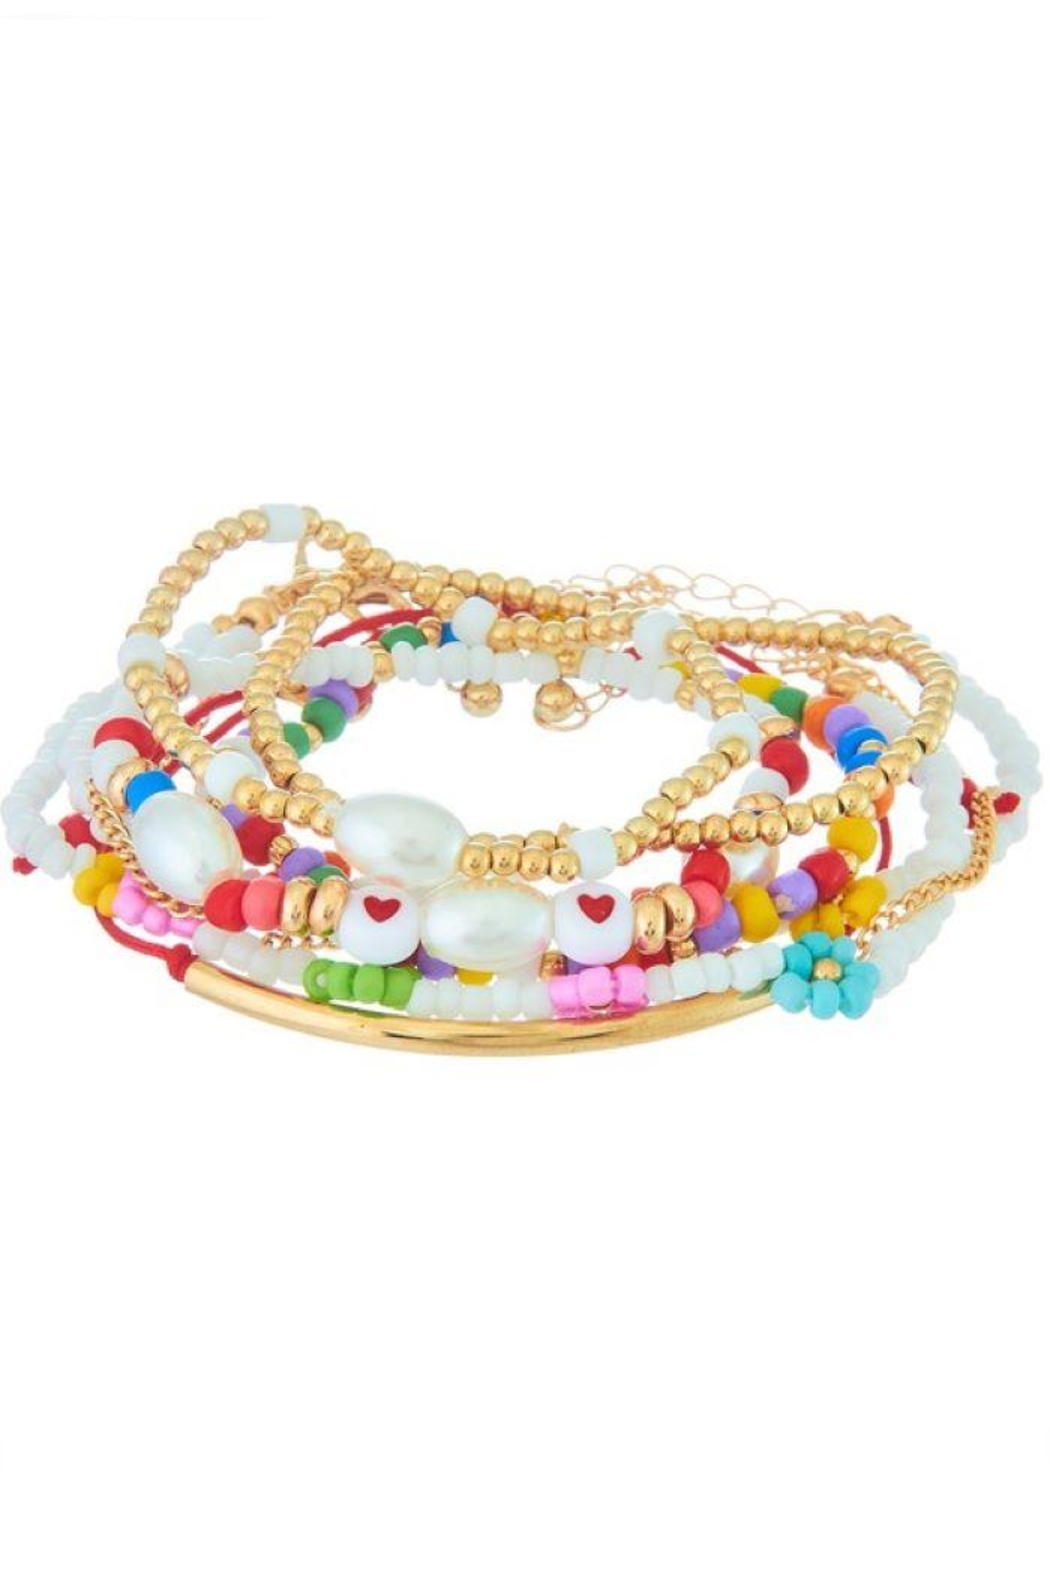 Ana Accessories Assorted Bead Girly Bracelet - Main Image